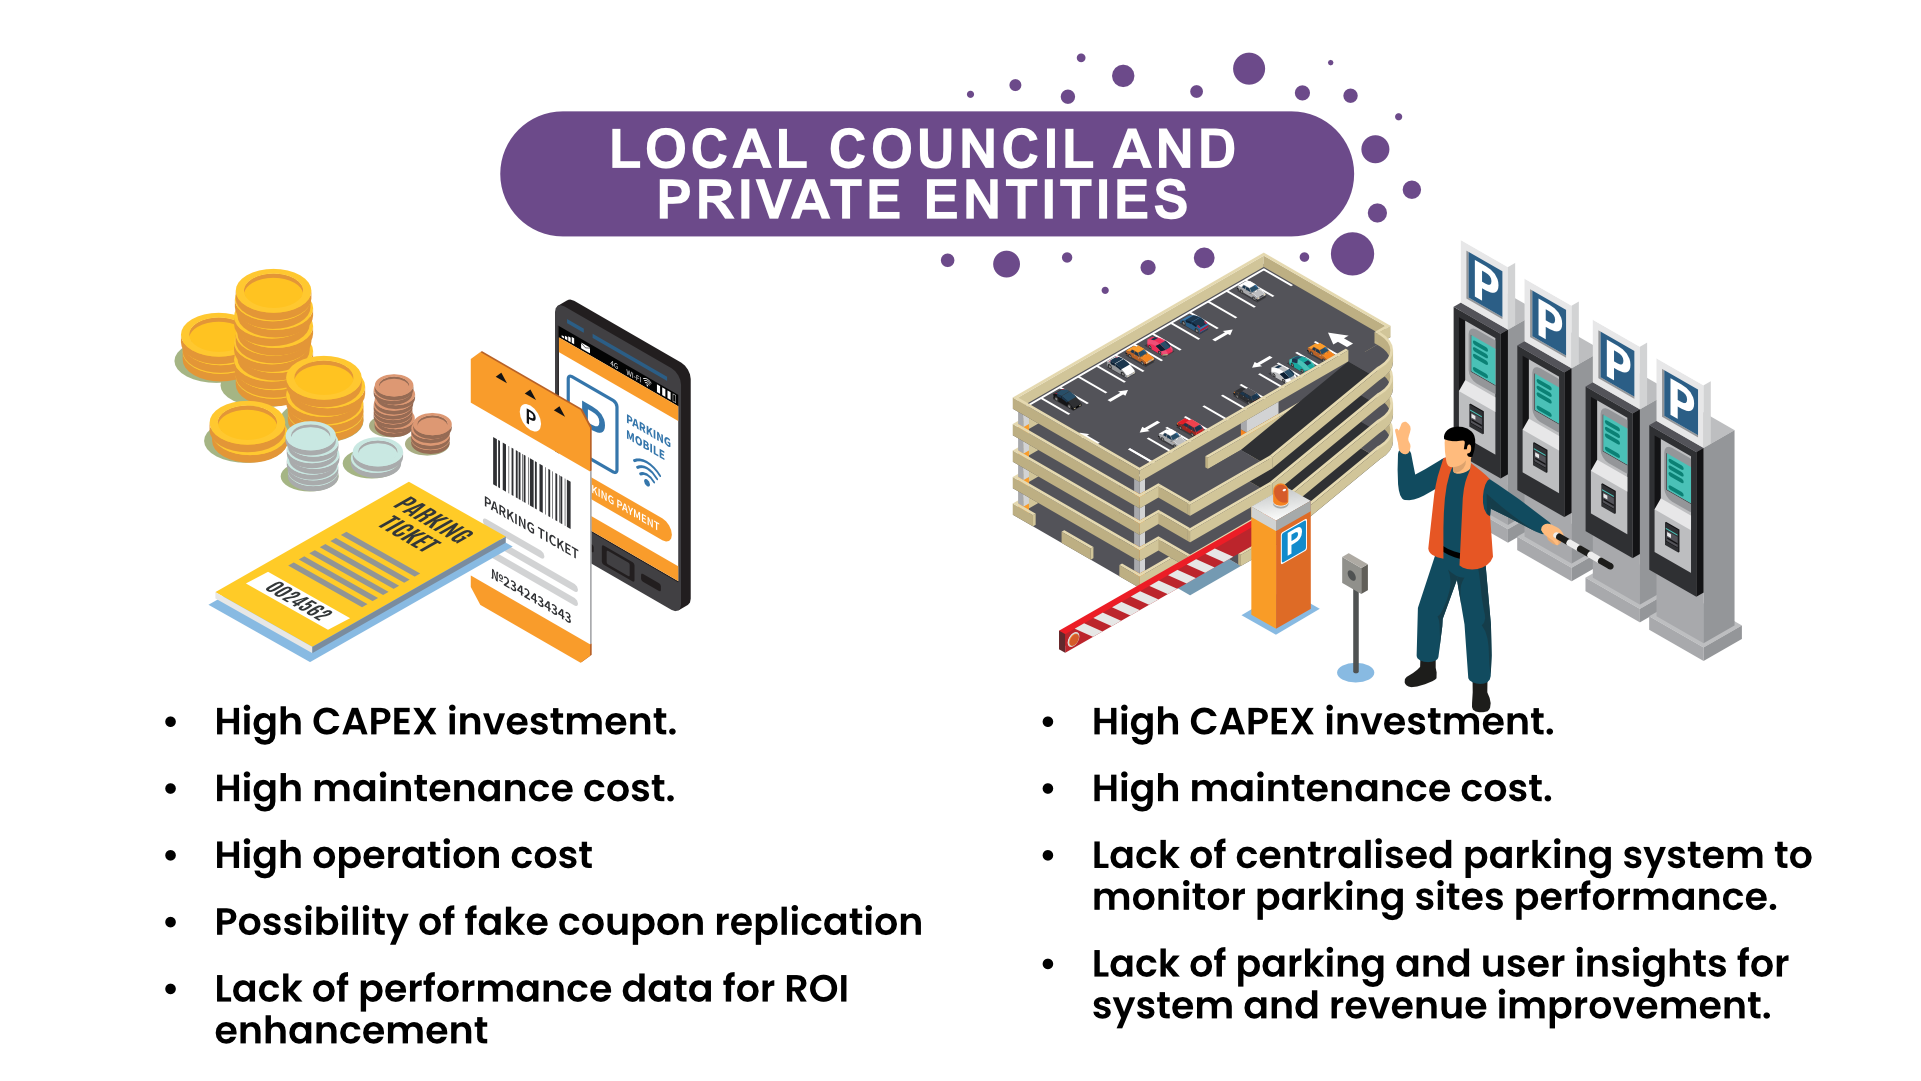 Local Councils and Private Entities